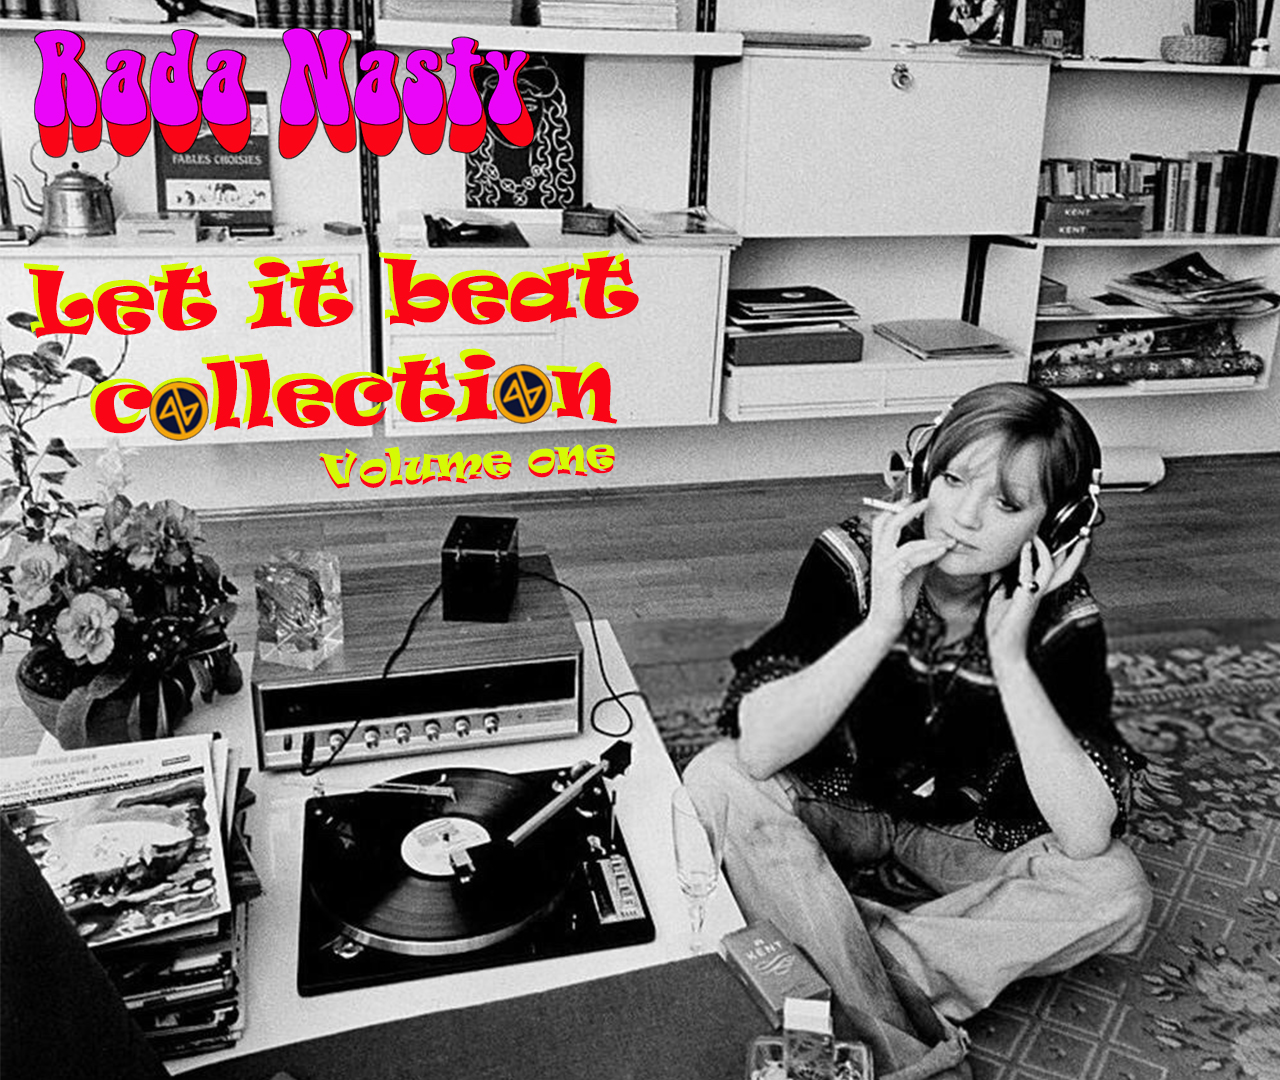 Let-it-beat-collection